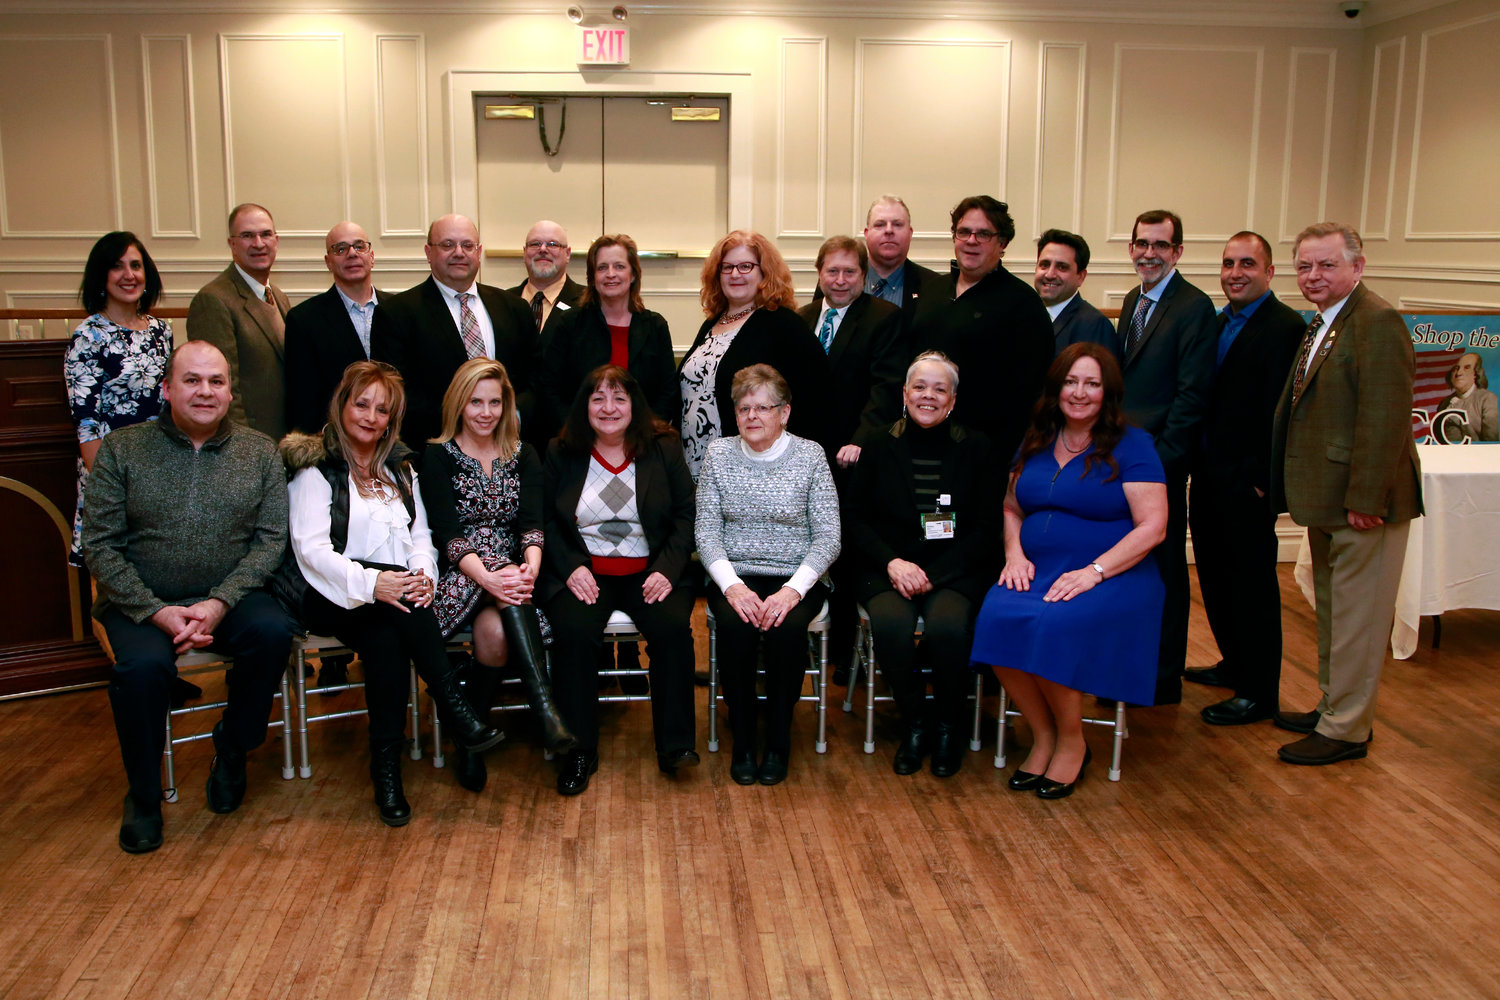 Officers and members of the organization's board of directors gathered at Plattdeutsche Park on Jan. 30.